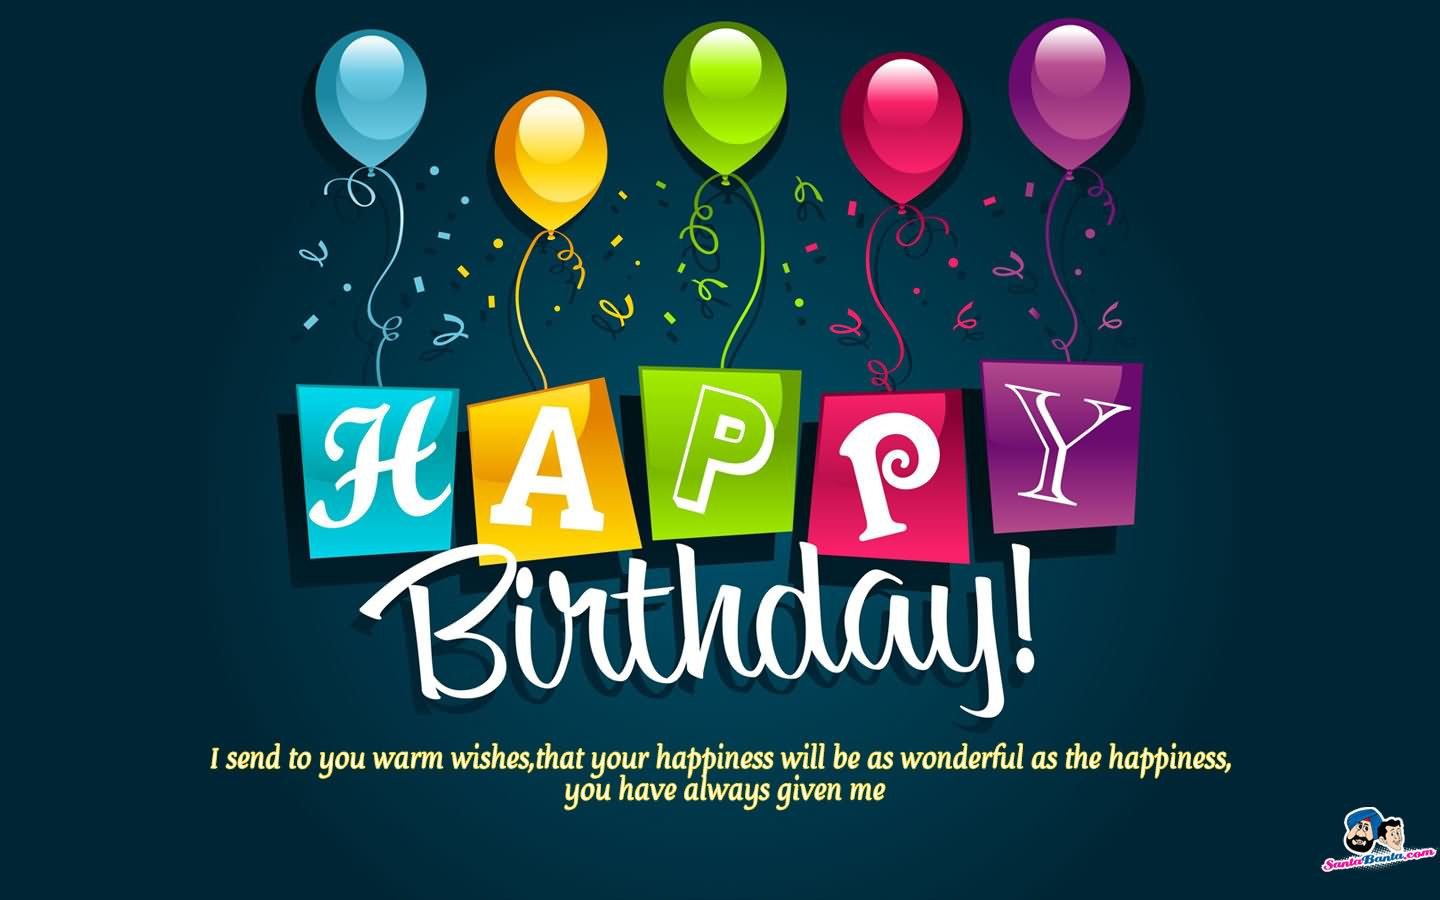 birthday wishes graphics ; i-send-to-you-warm-wishes-on-your-happy-birthday-graphic